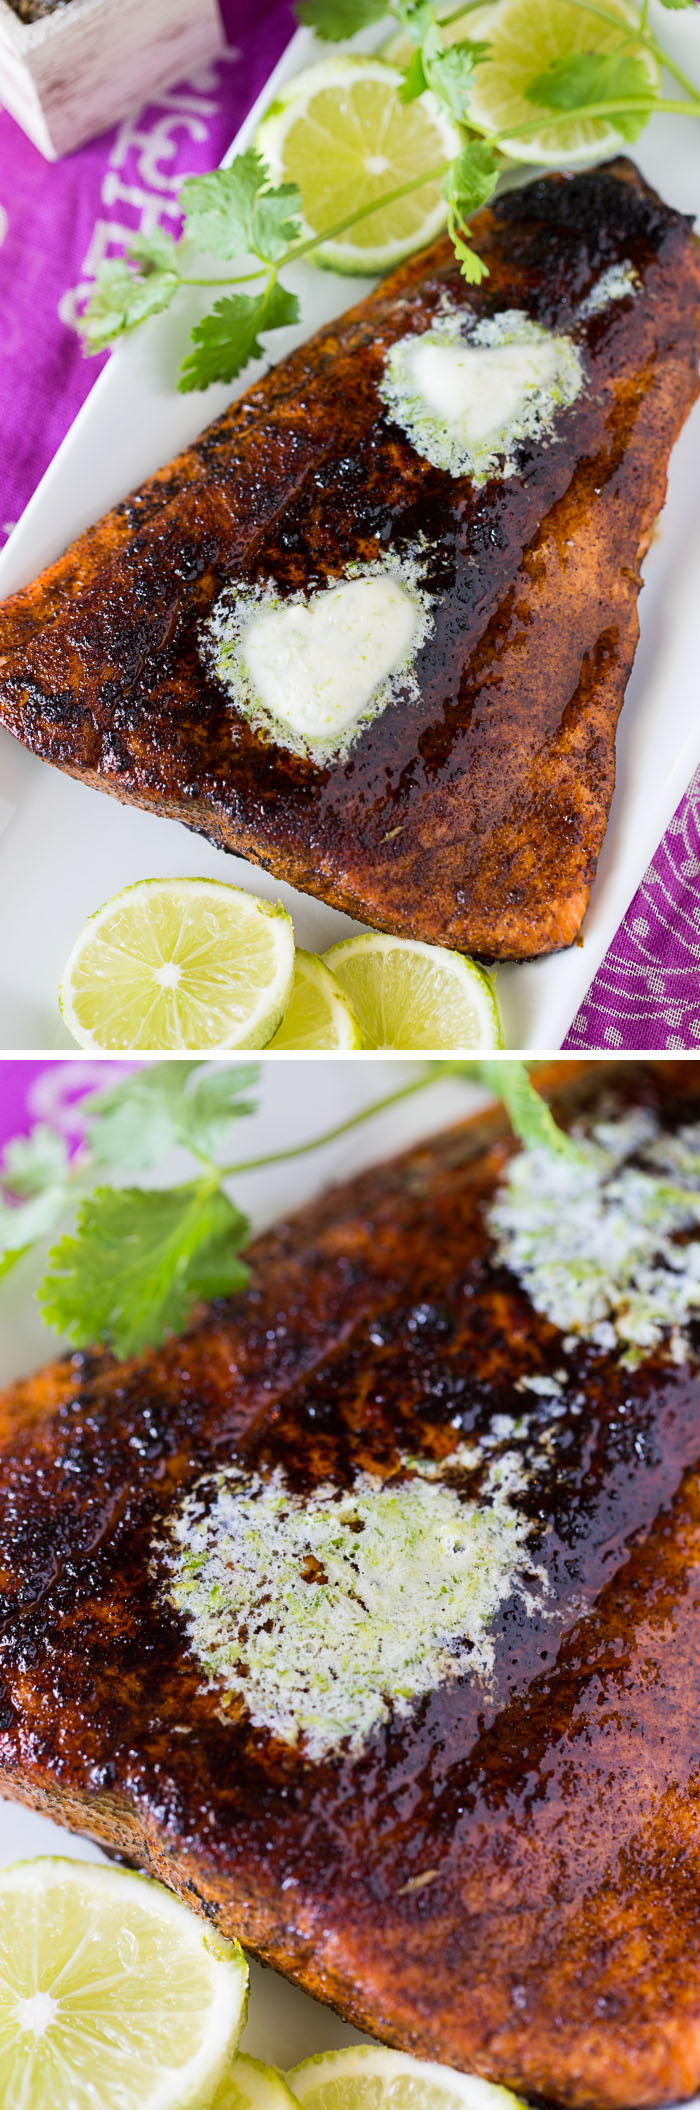 Chile Baked Salmon with Lime Butter - Willow Bird Baking